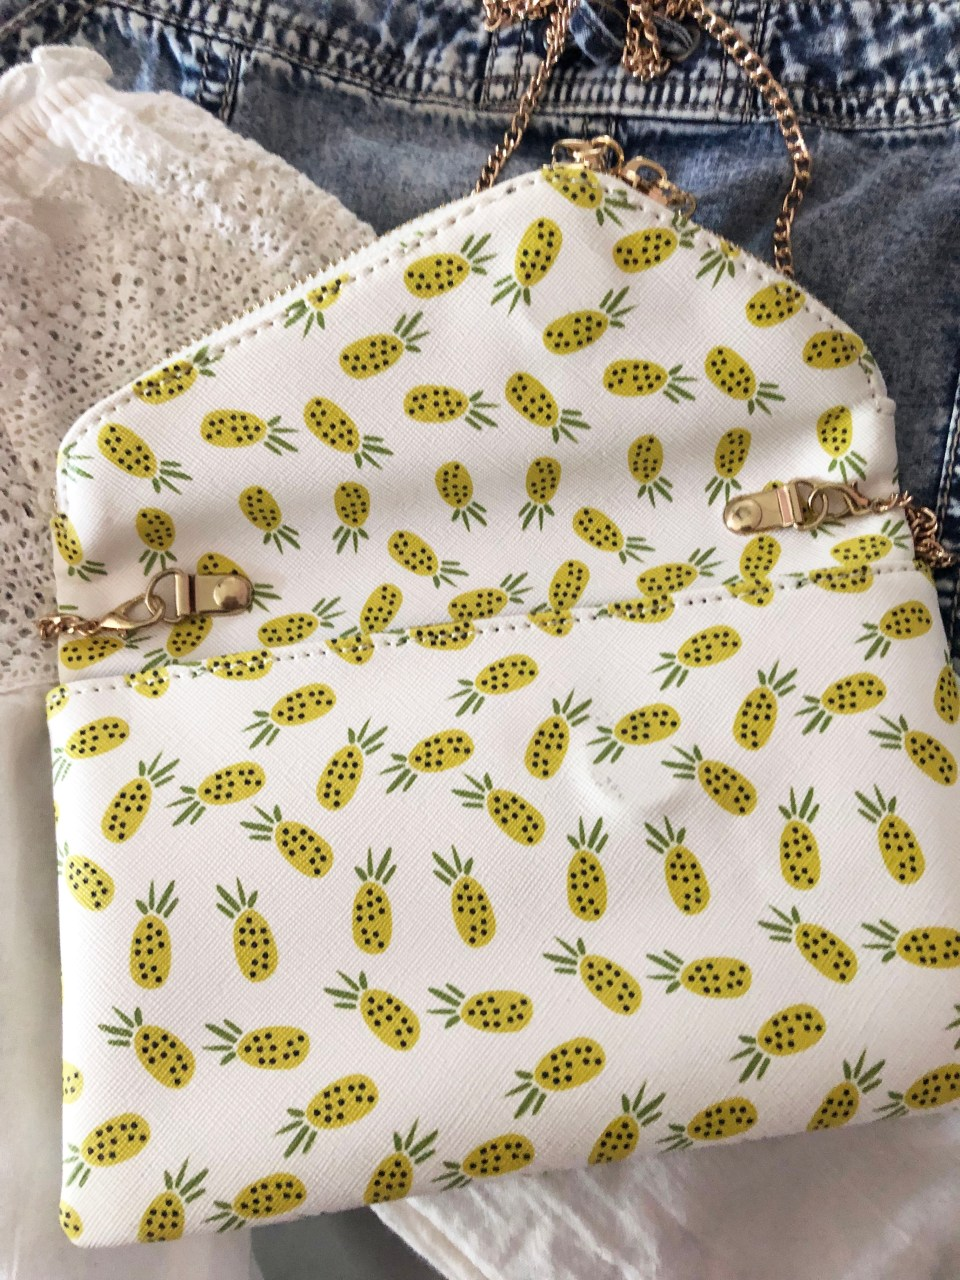 Pineapple Foldover Purse 2